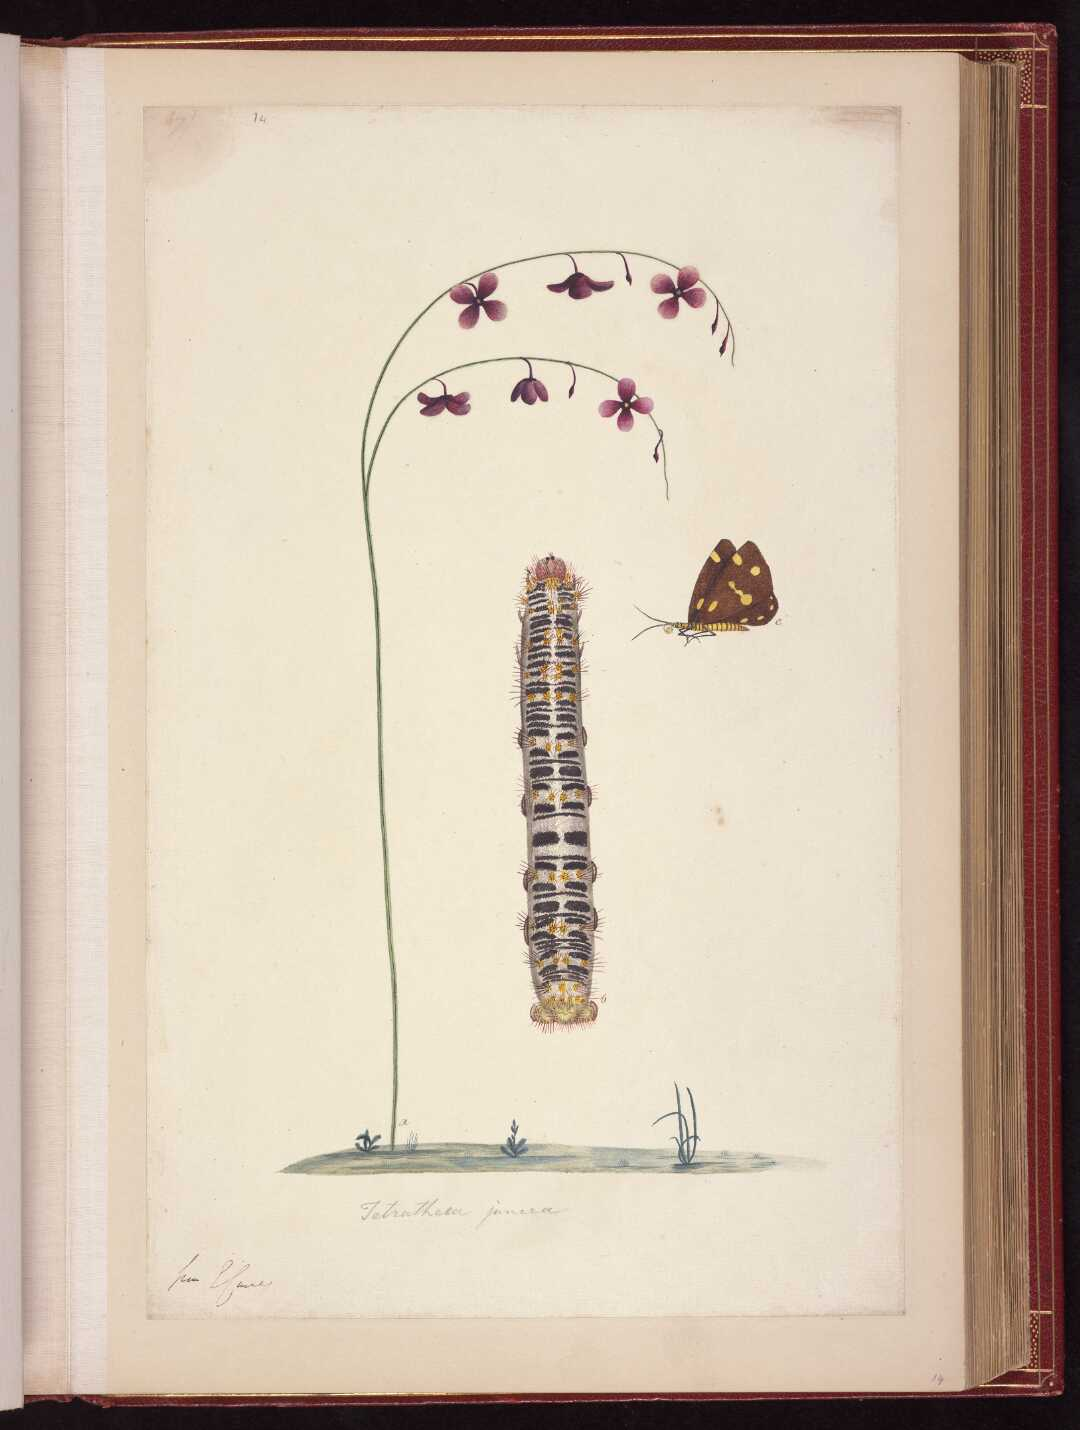 flower, caterpillar and Spotted moth, nyctemera amica